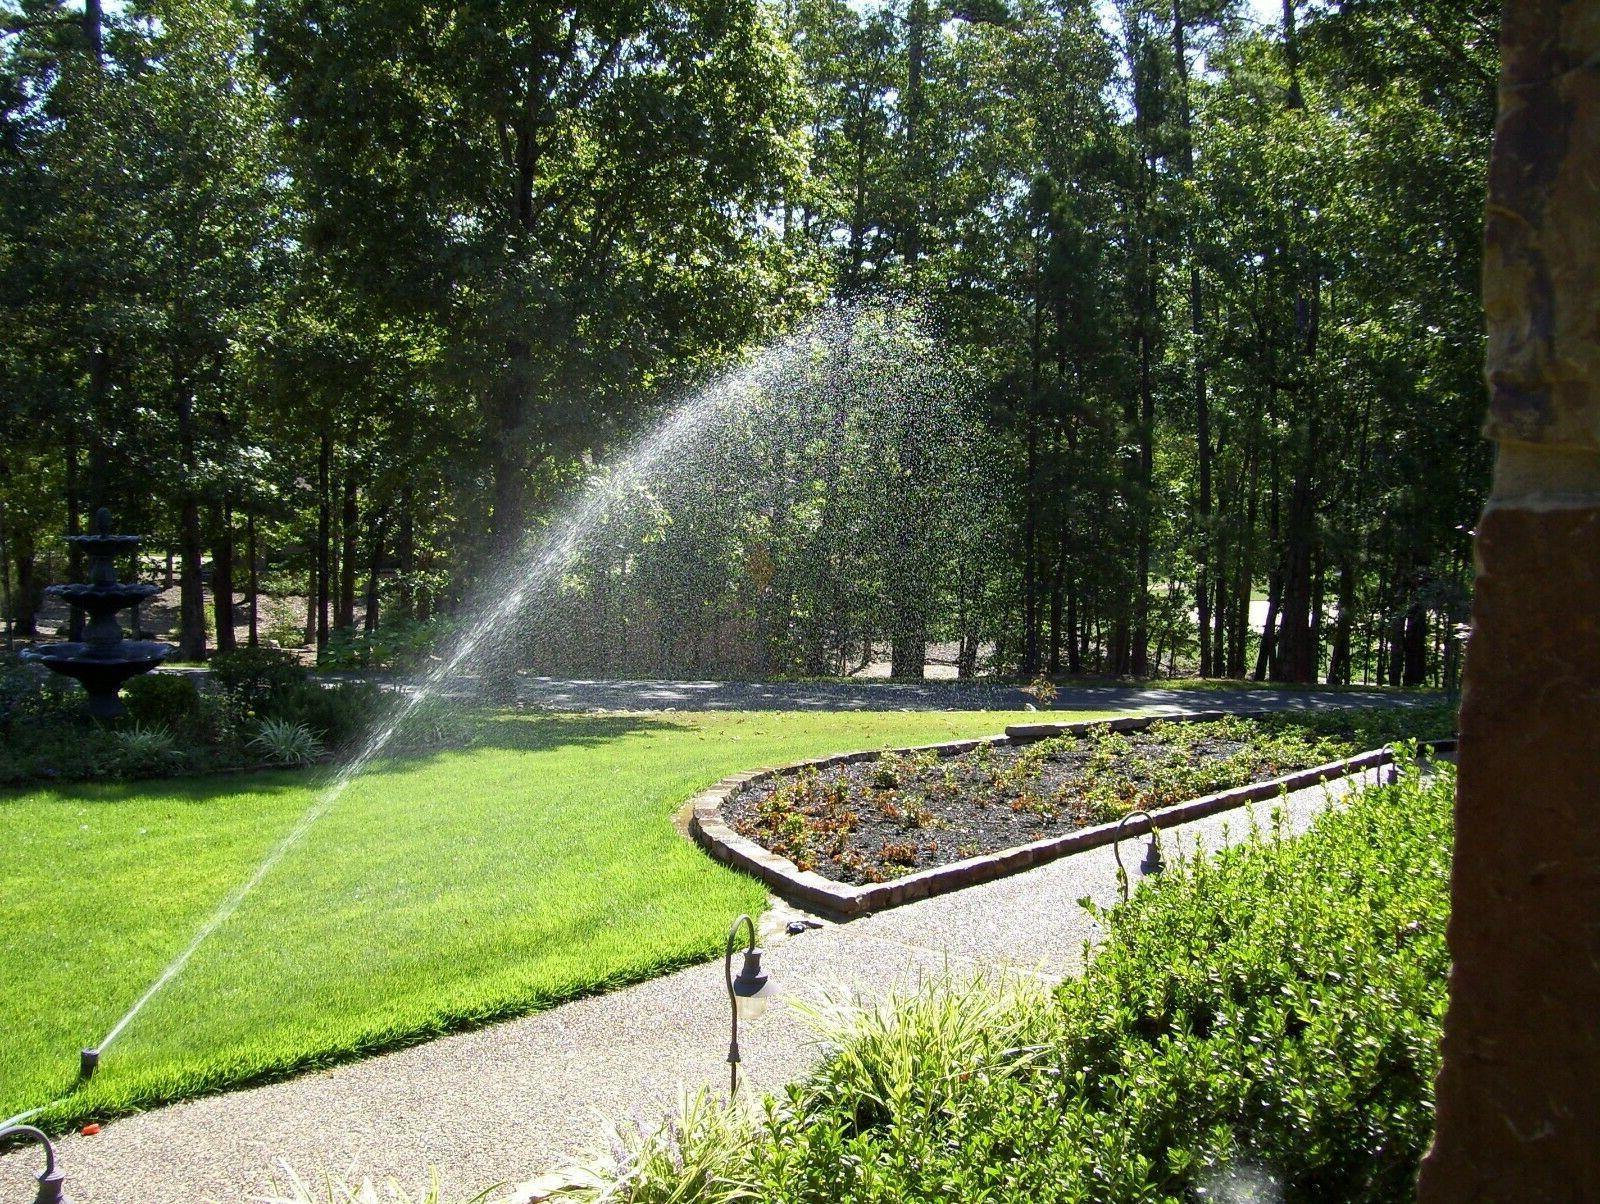 Quick-Snap Sprinkler with